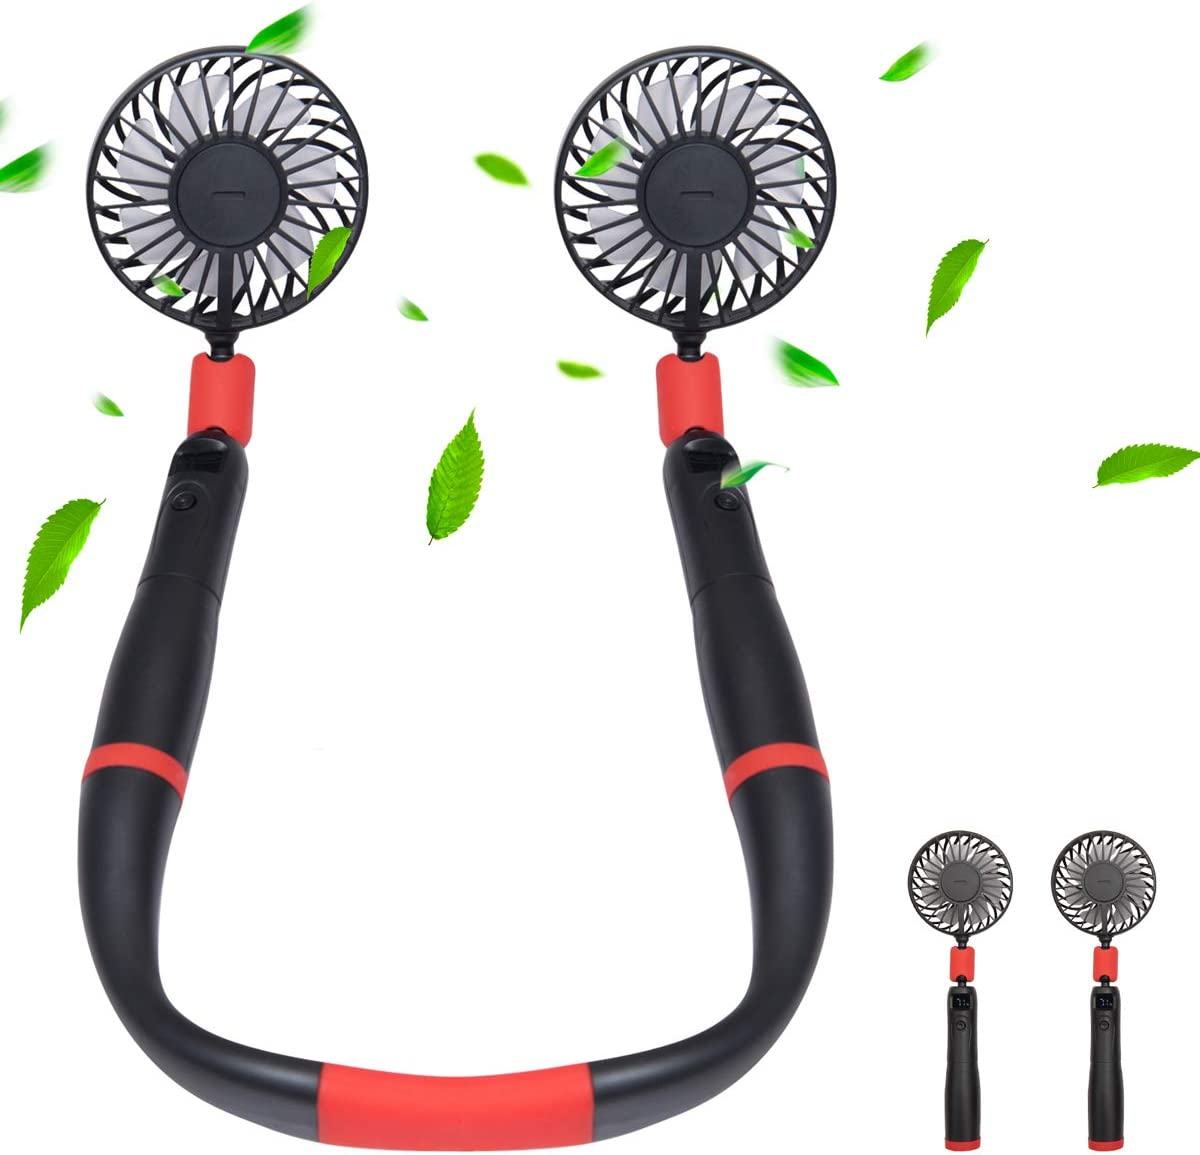 Portable Neck Fan Personal USB Rechargeable Hand Free Sports Fans 4000mAh Removable Handheld and Wearable with 3 Level Airflow, LCD Power Display for Travel Office Household Cooling By Tikduck (Black)